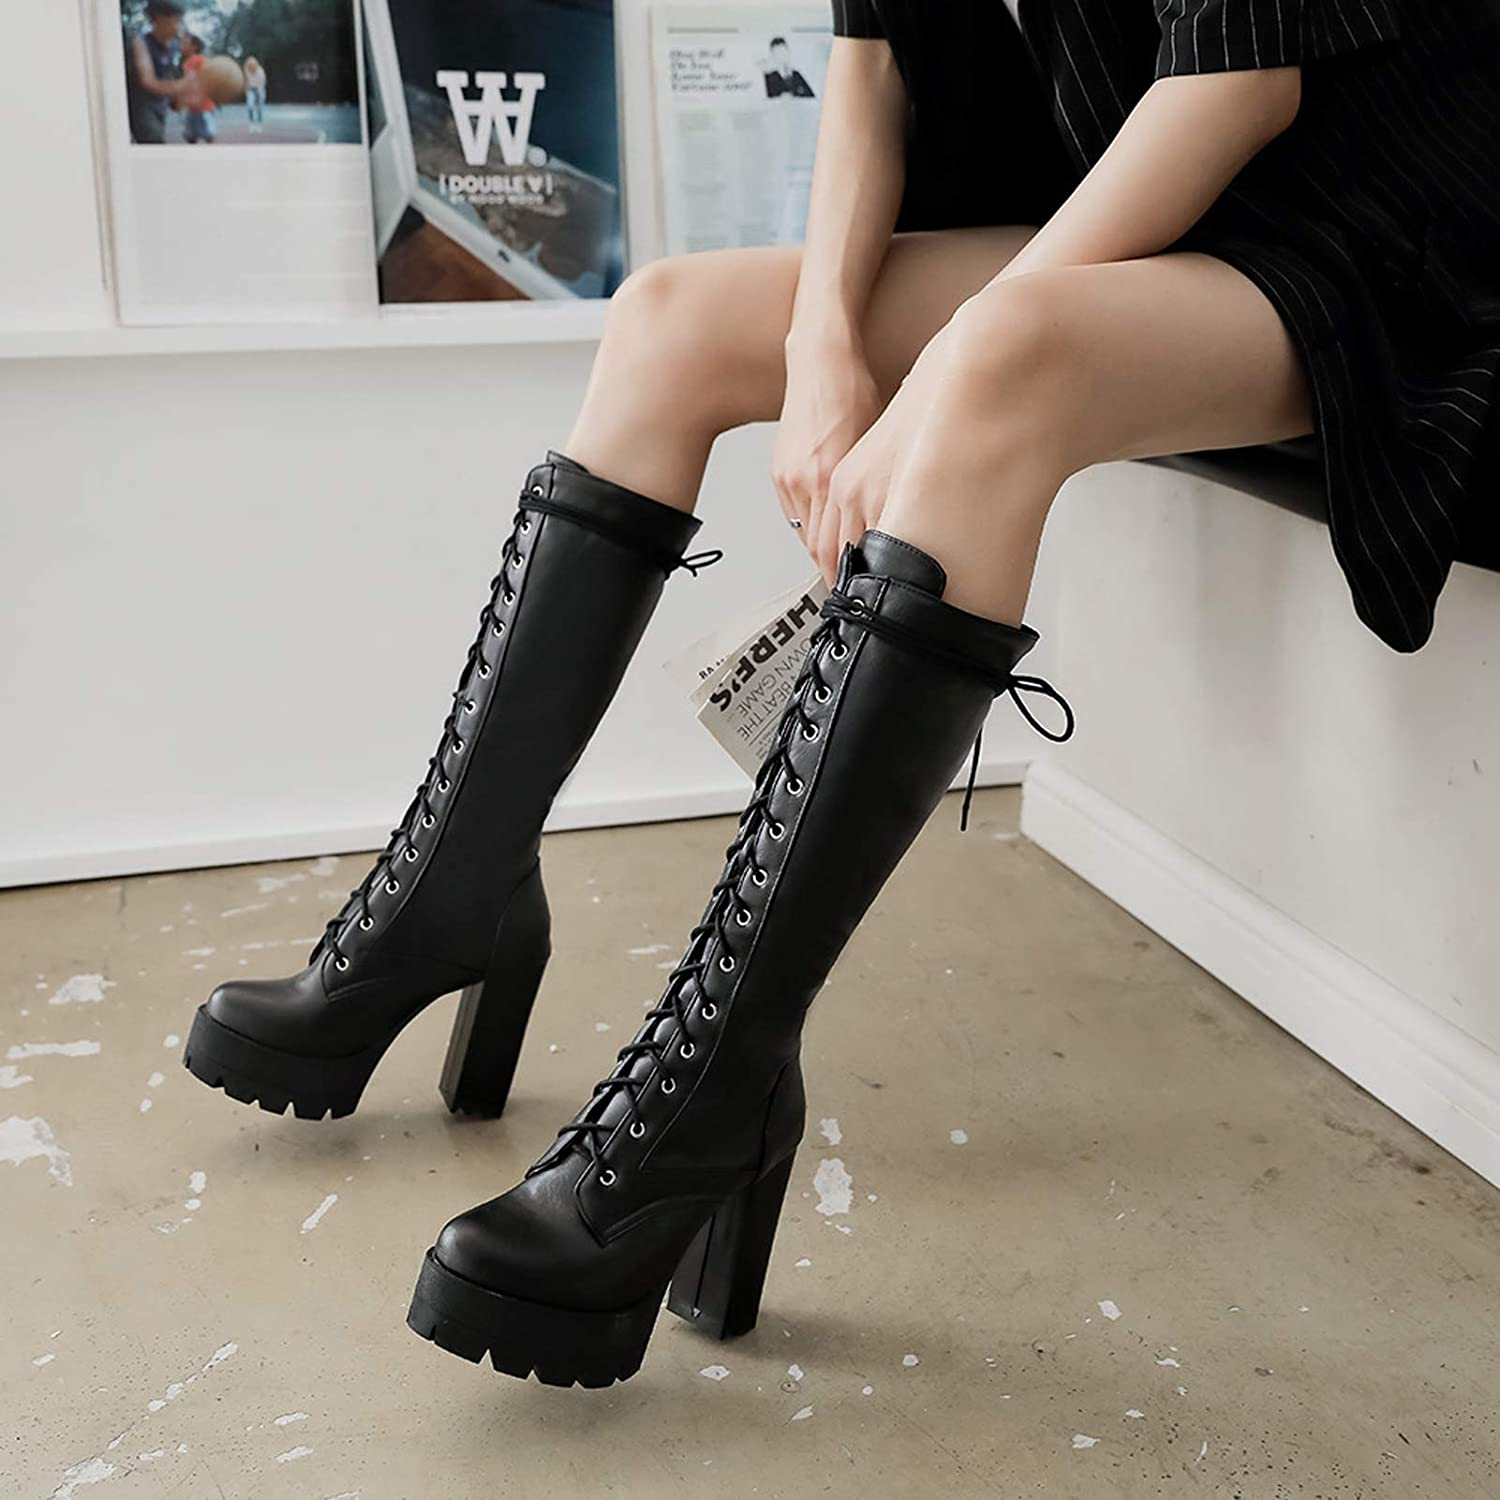 Gothic Women Block High Heel Knee High Boots Platform Lace Up Knight Boots Shoes